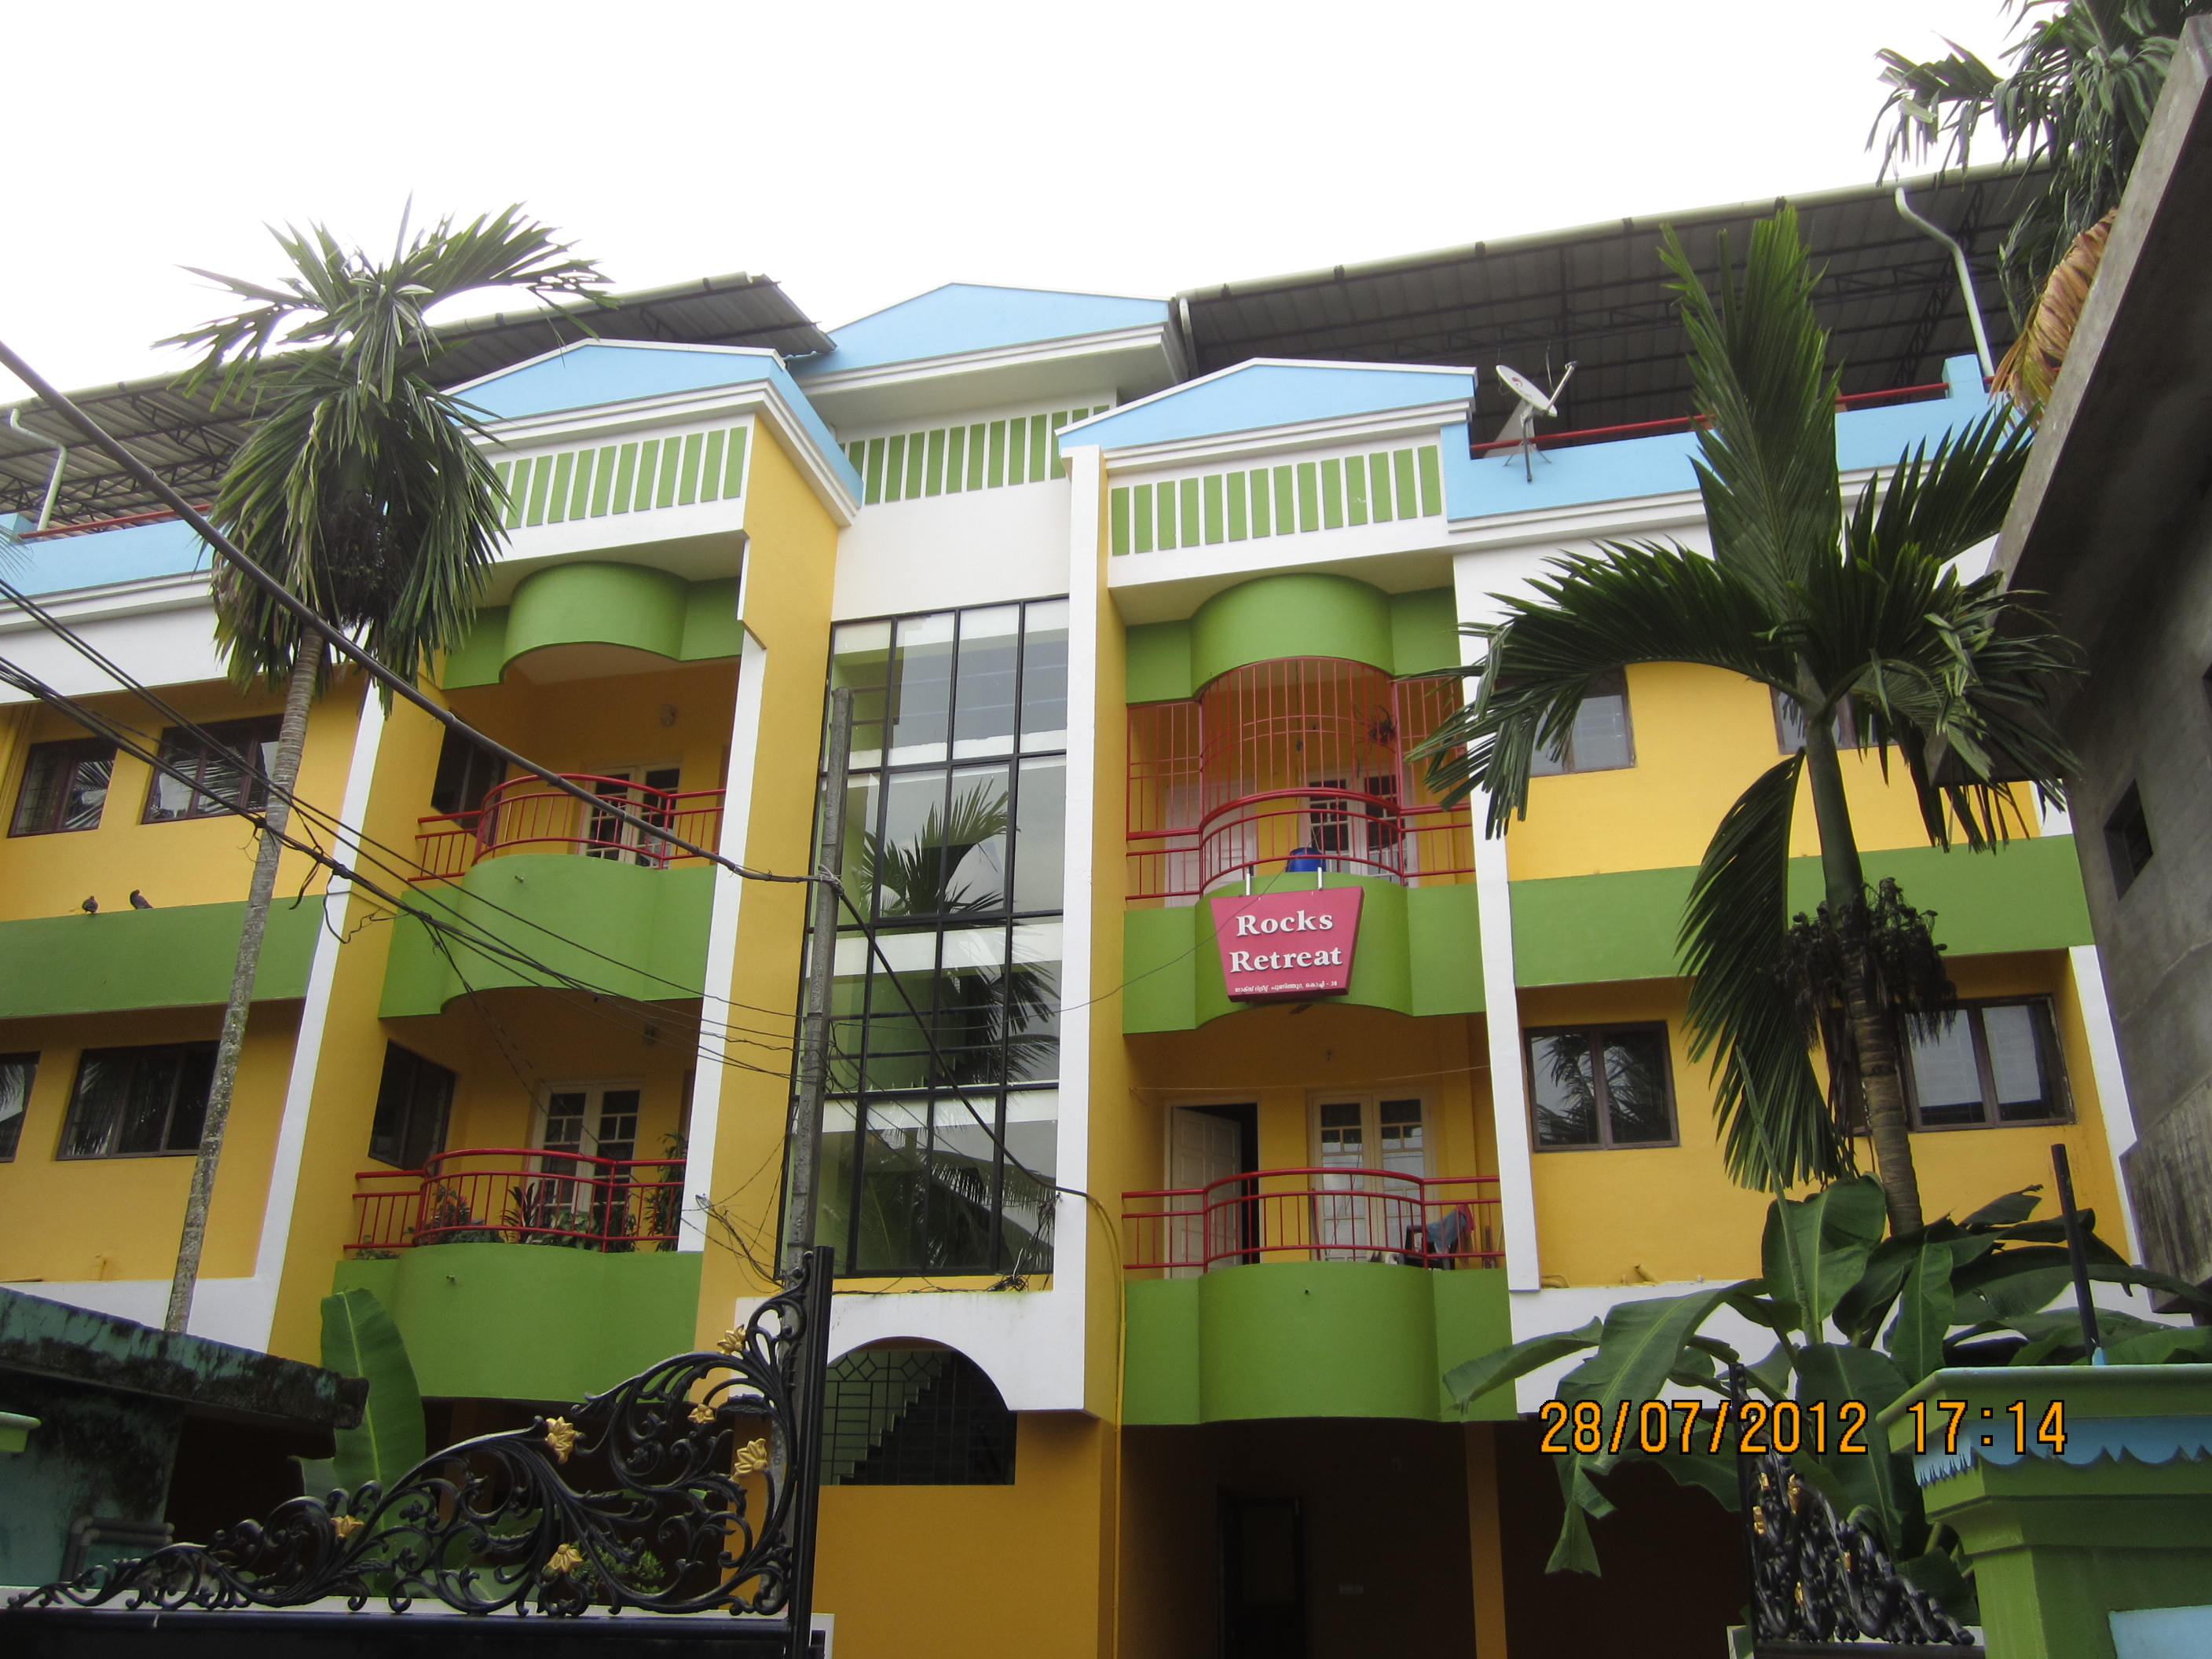 2 BHK FLAT FOR SALE IN MARADU - ERNAKULAM